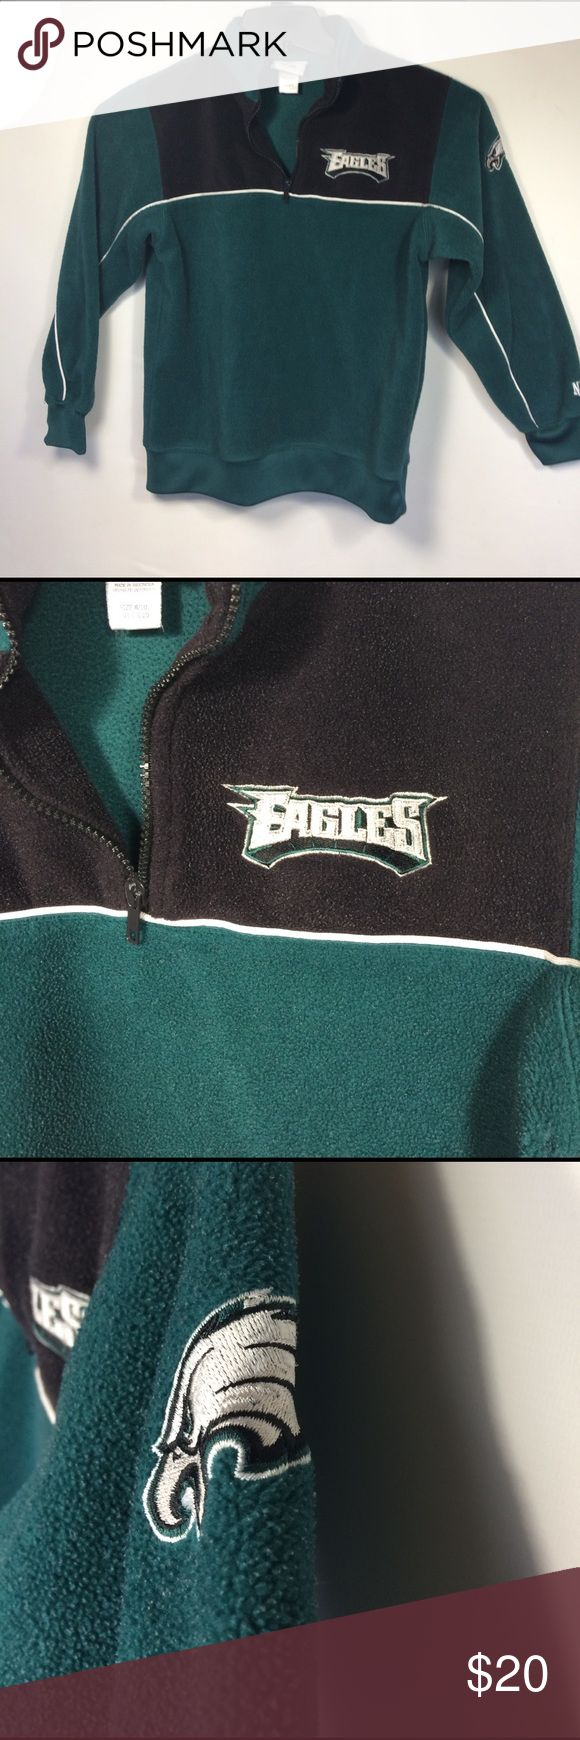 Youth Size 8-10 NFL Philadelphia Eagles Fleece 1/4 Zip Philadelphia eagles youth fleece size 8-10 NFL apparel nfl team apparel Shirts & Tops Sweatshirts & Hoodies